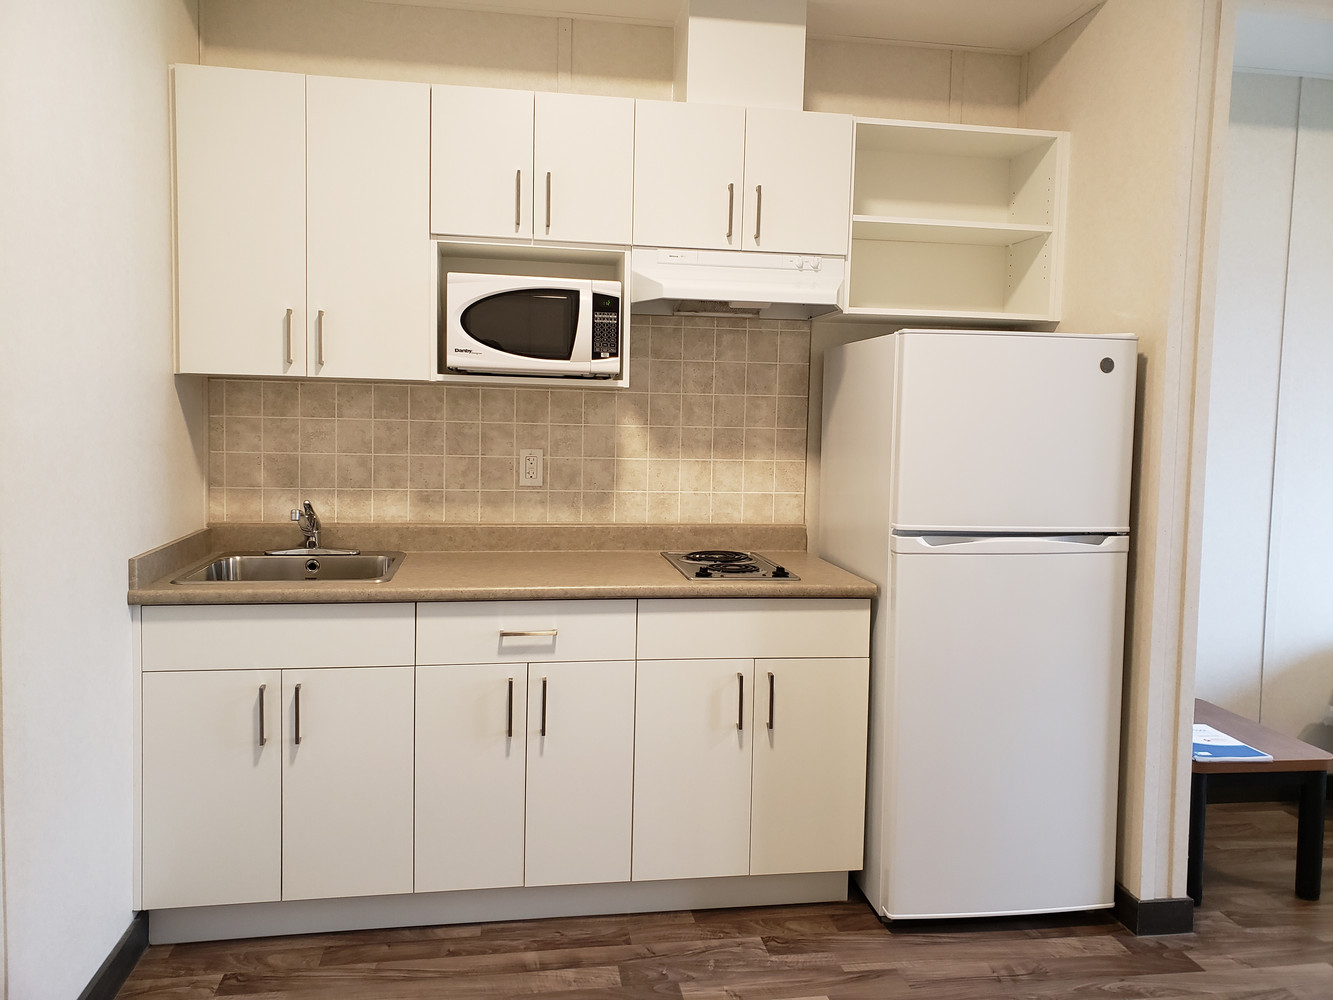 Kitchenette in Bachelor Suite